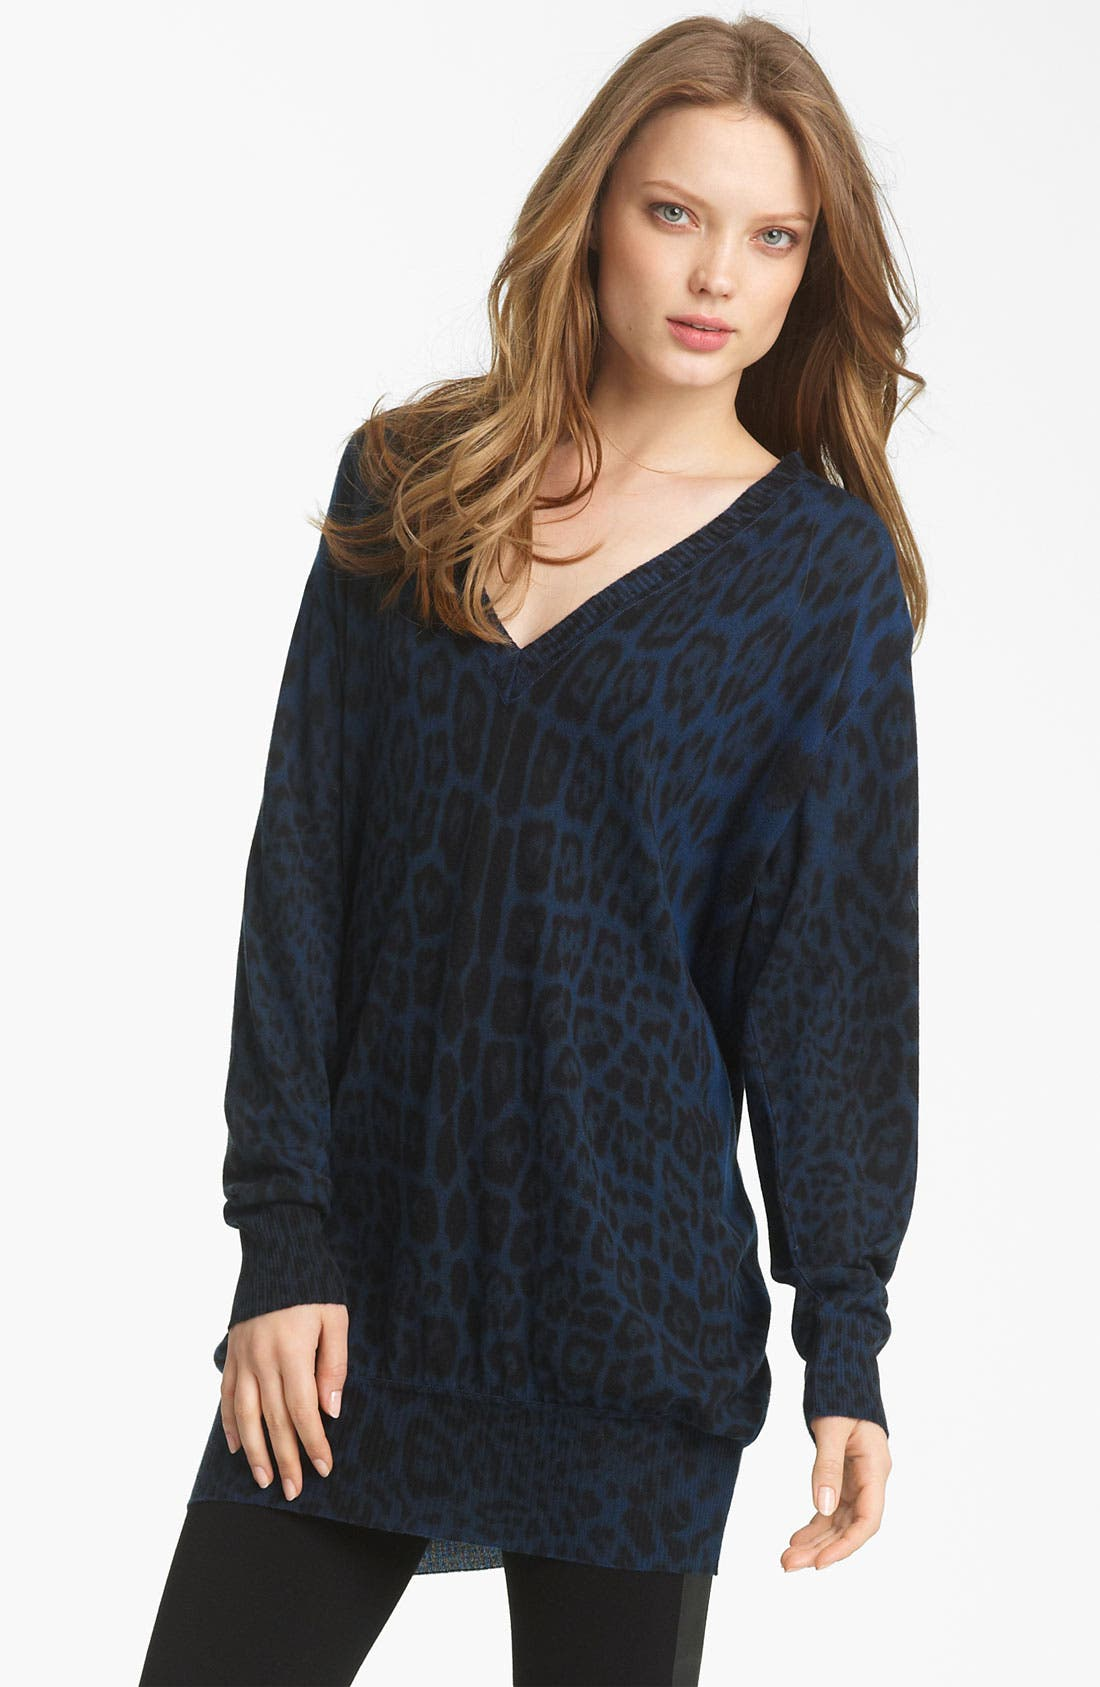 Alternate Image 1 Selected - Roberto Cavalli Oversized Knit Sweater